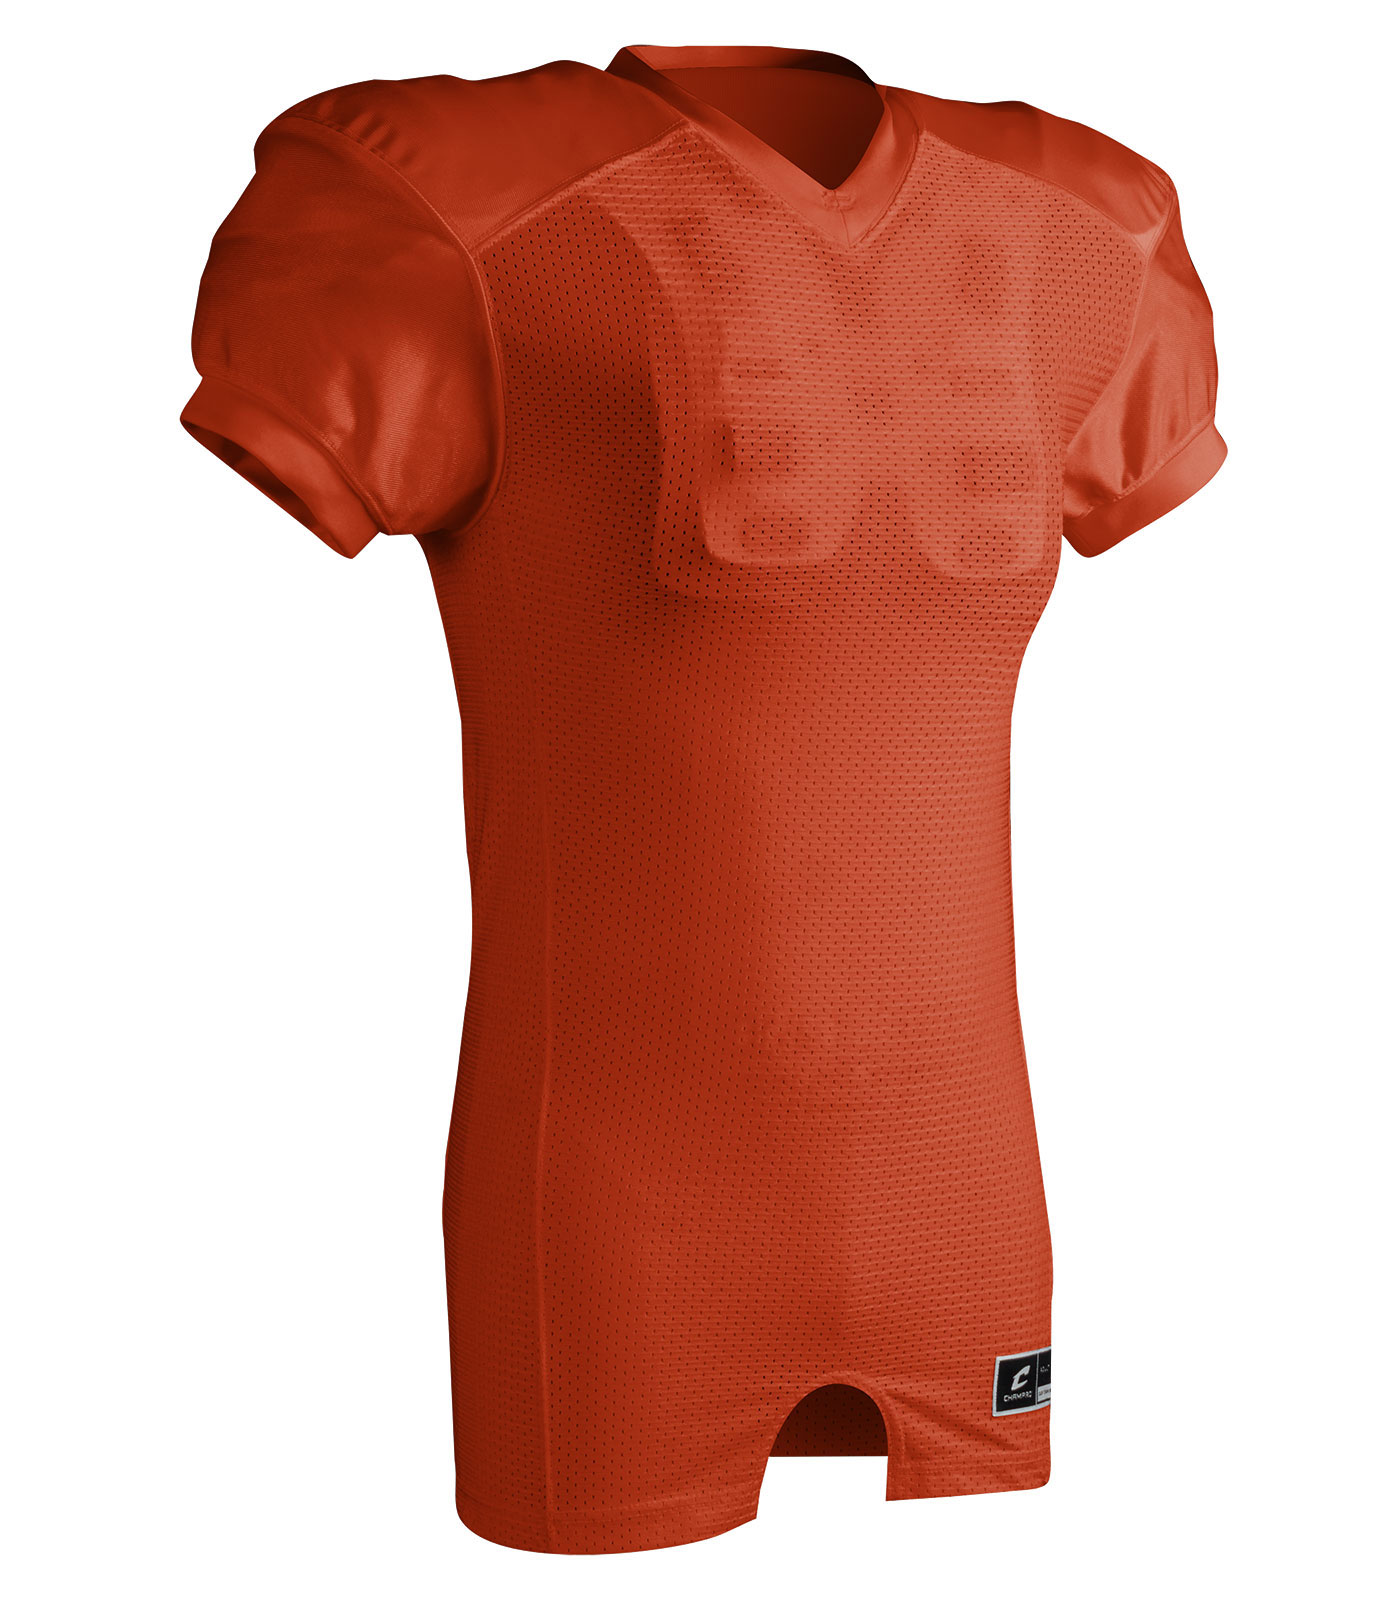 Red Dog Collegiate Fit Youth Football Jersey